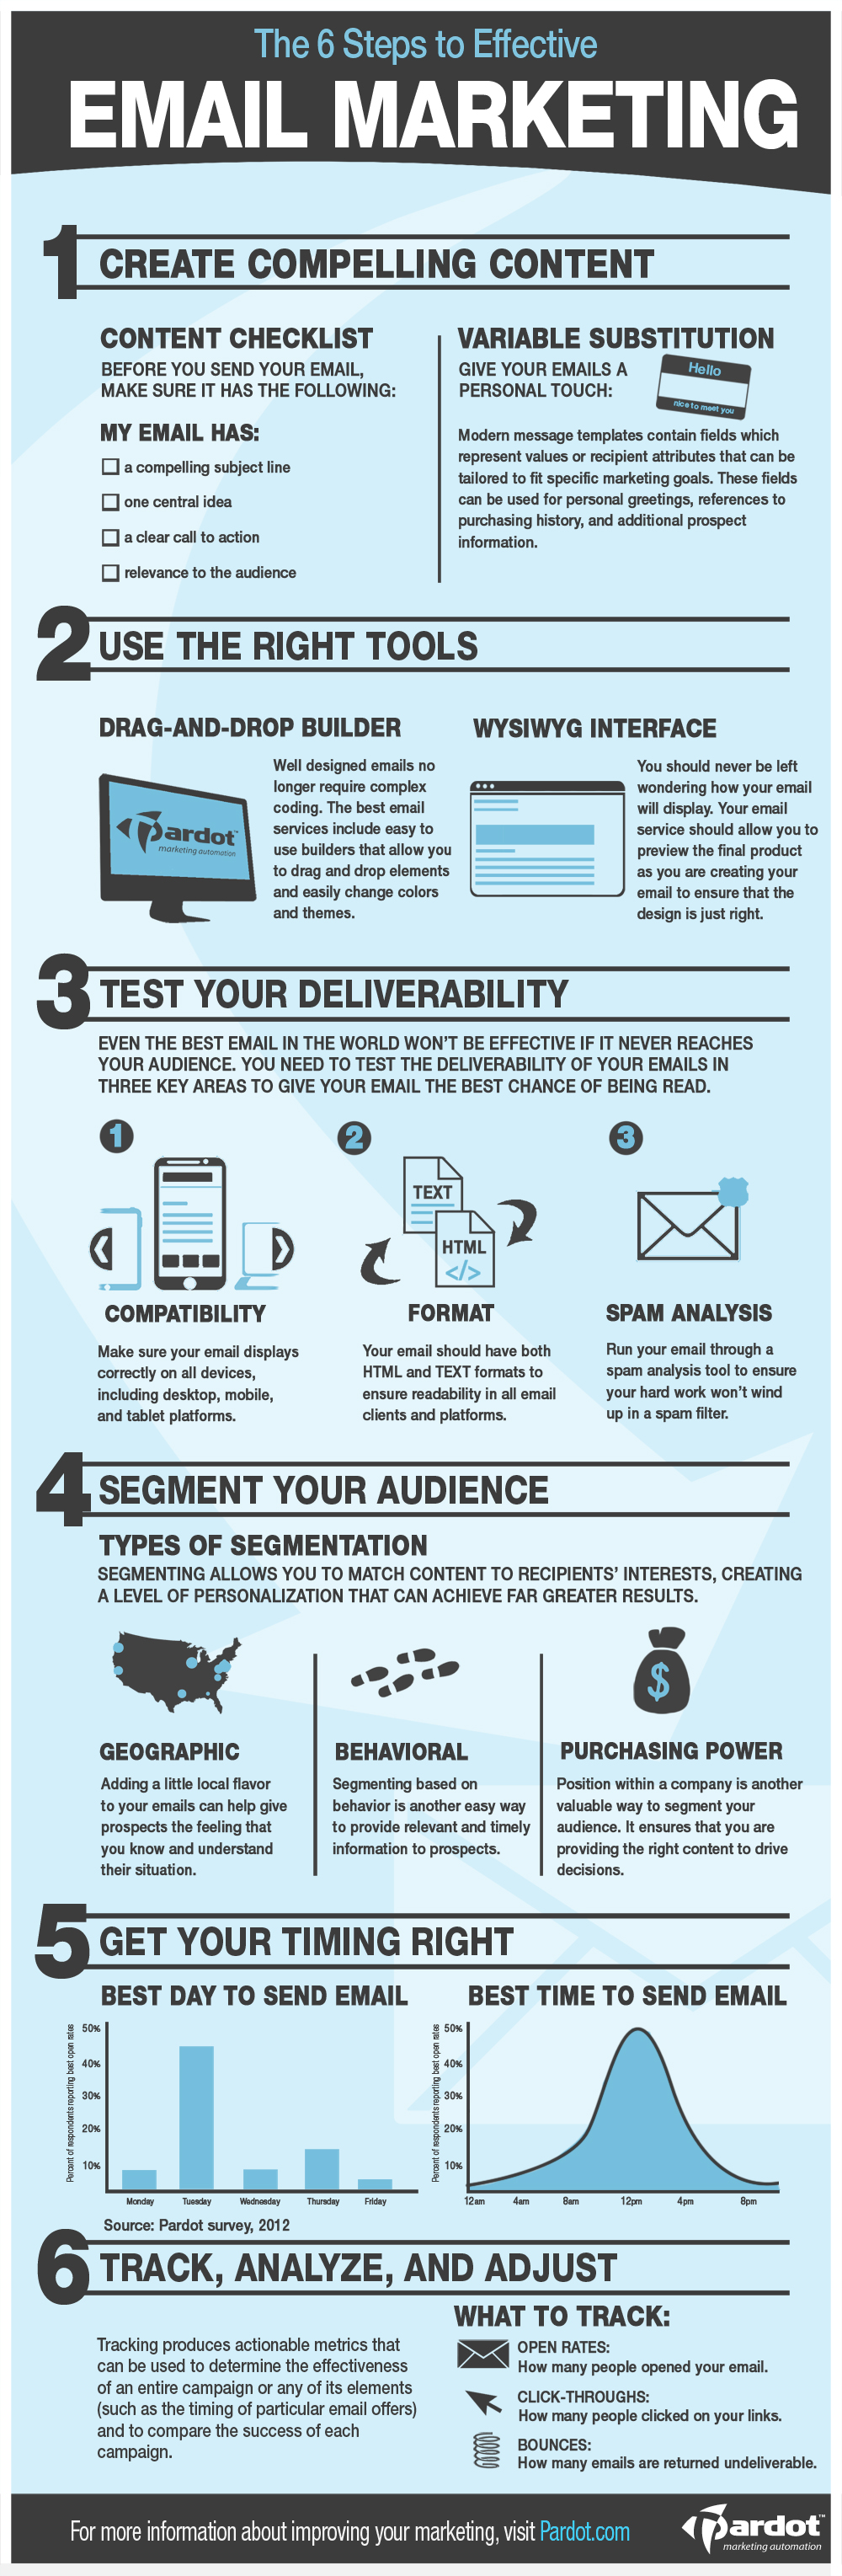 6-Steps-to-Effective-Email-Marketing